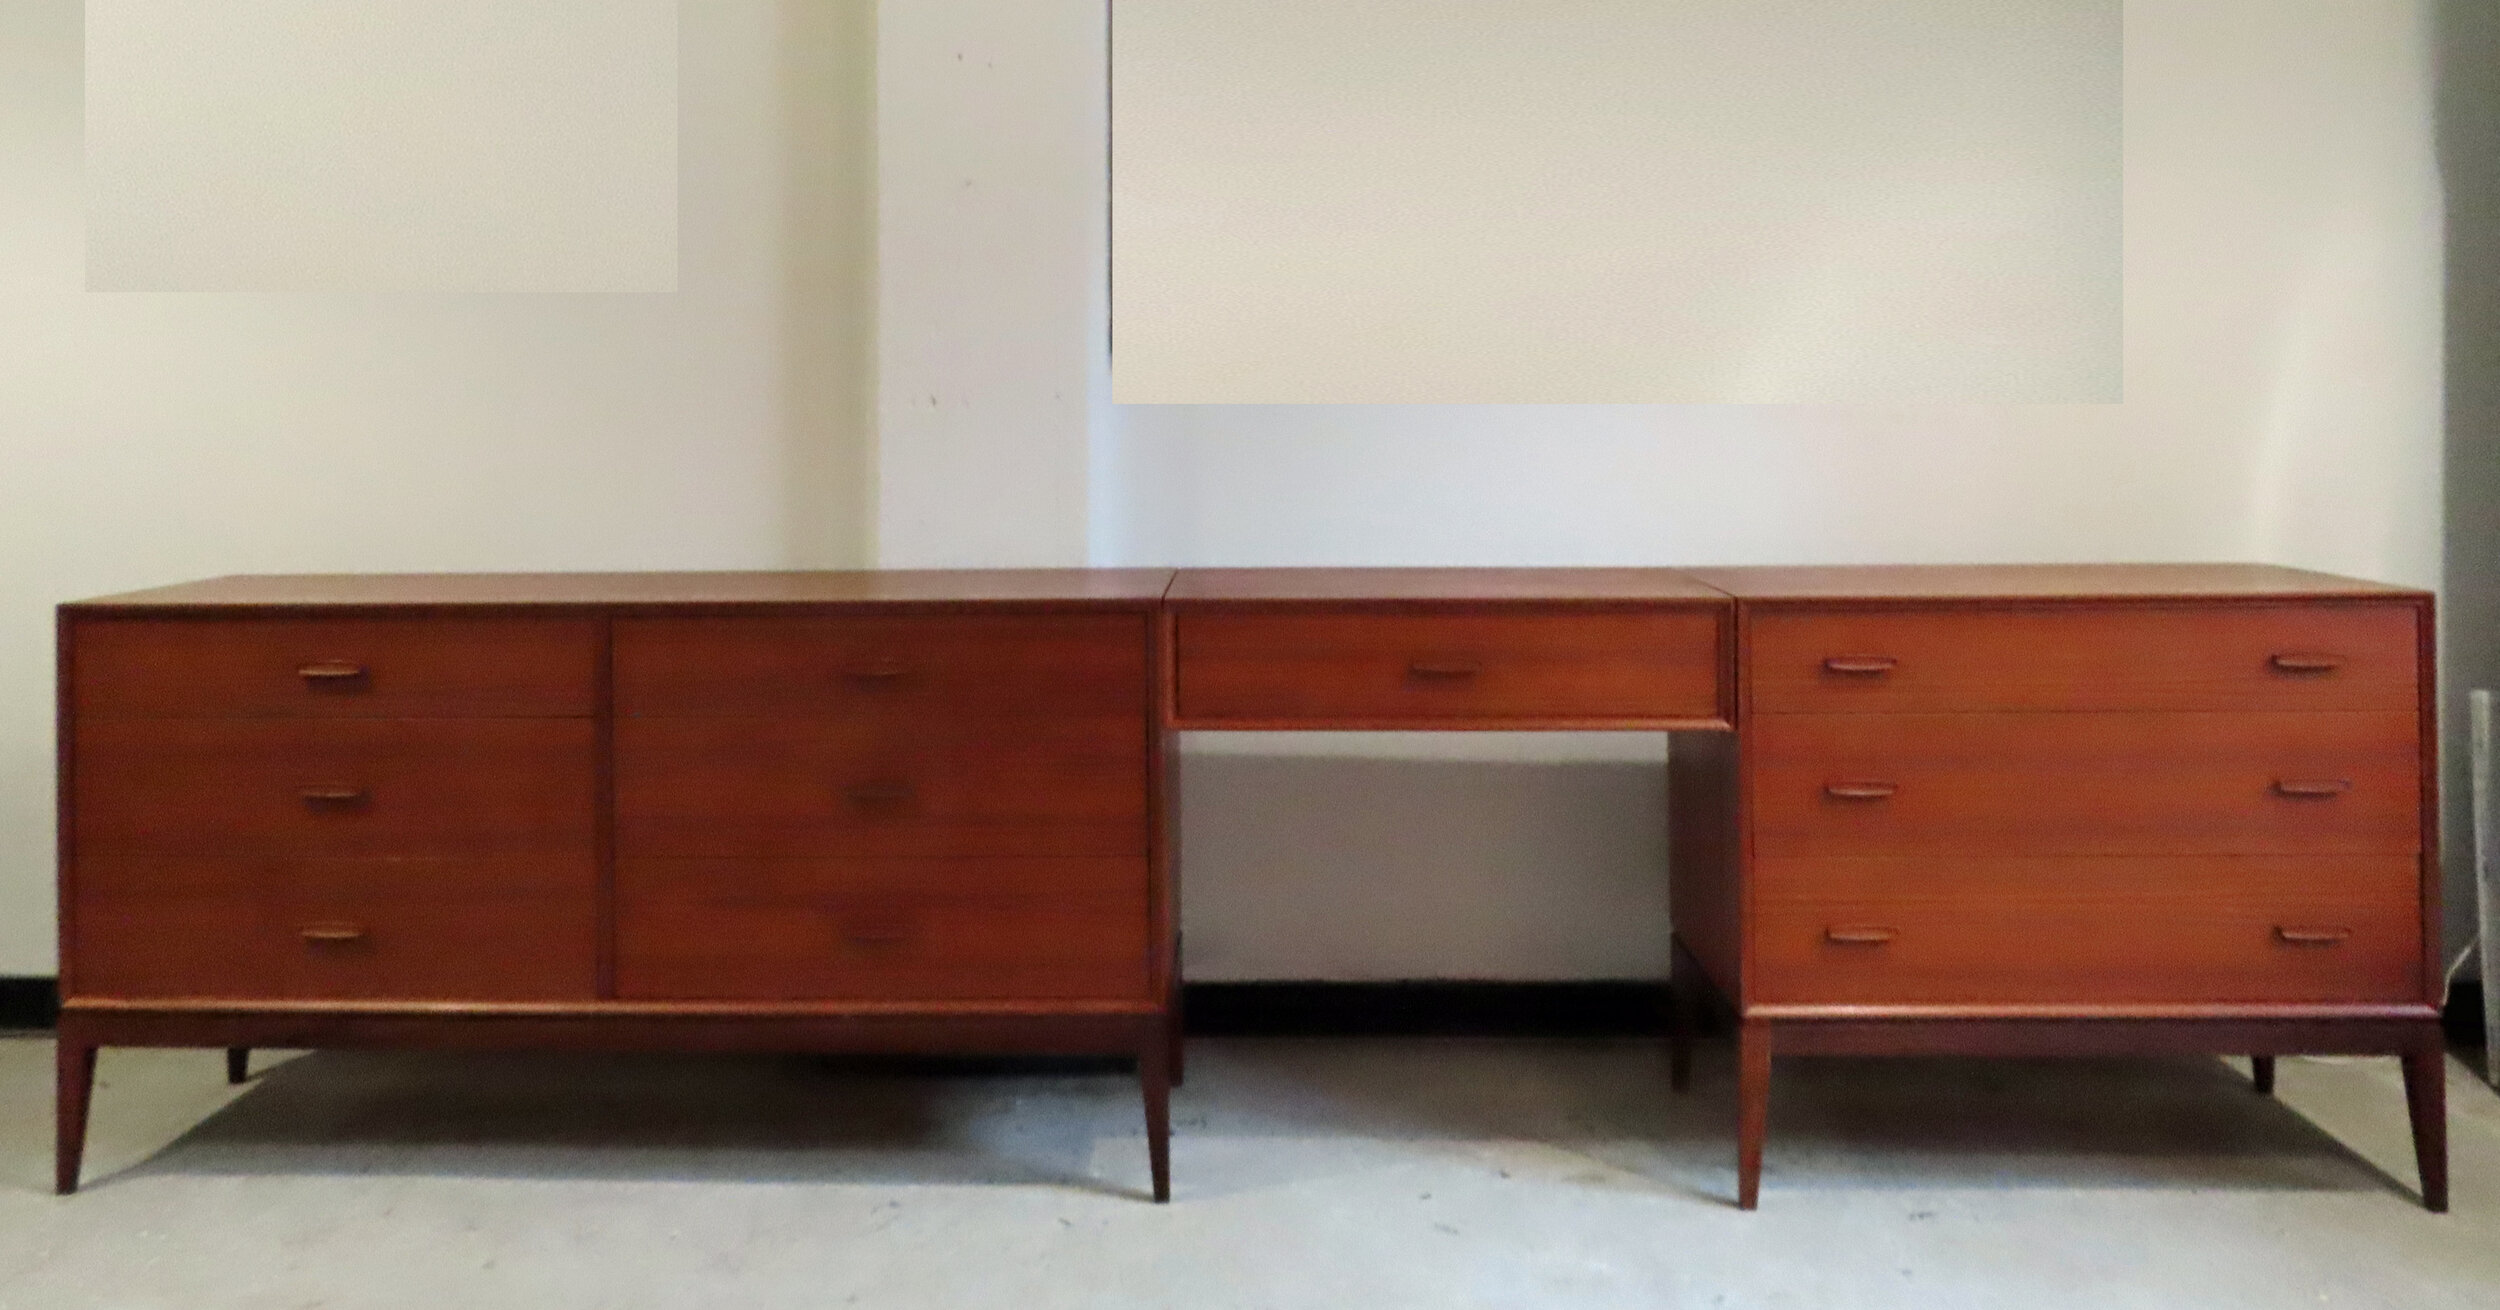 DANISH MODERN TEAK DRESSER, CHEST, AND VANITY